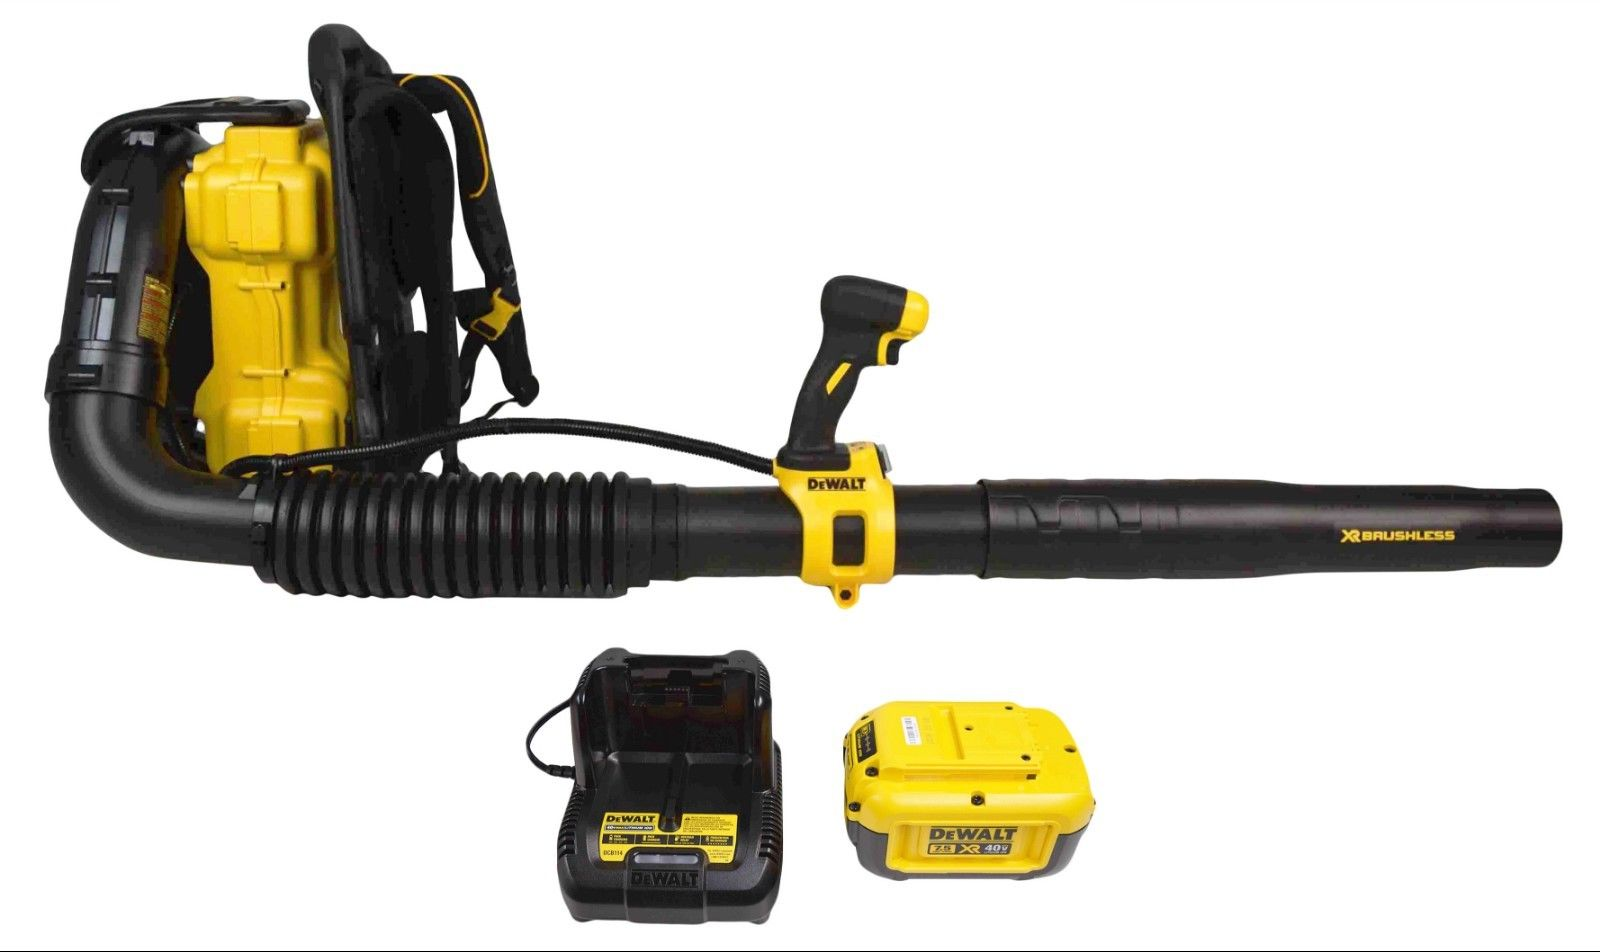 Dewalt-Dcbl590x1-40v-Max-7.5-Ah-Lithium-Ion-Xr-Brushless-Backpack-Blower-image-1